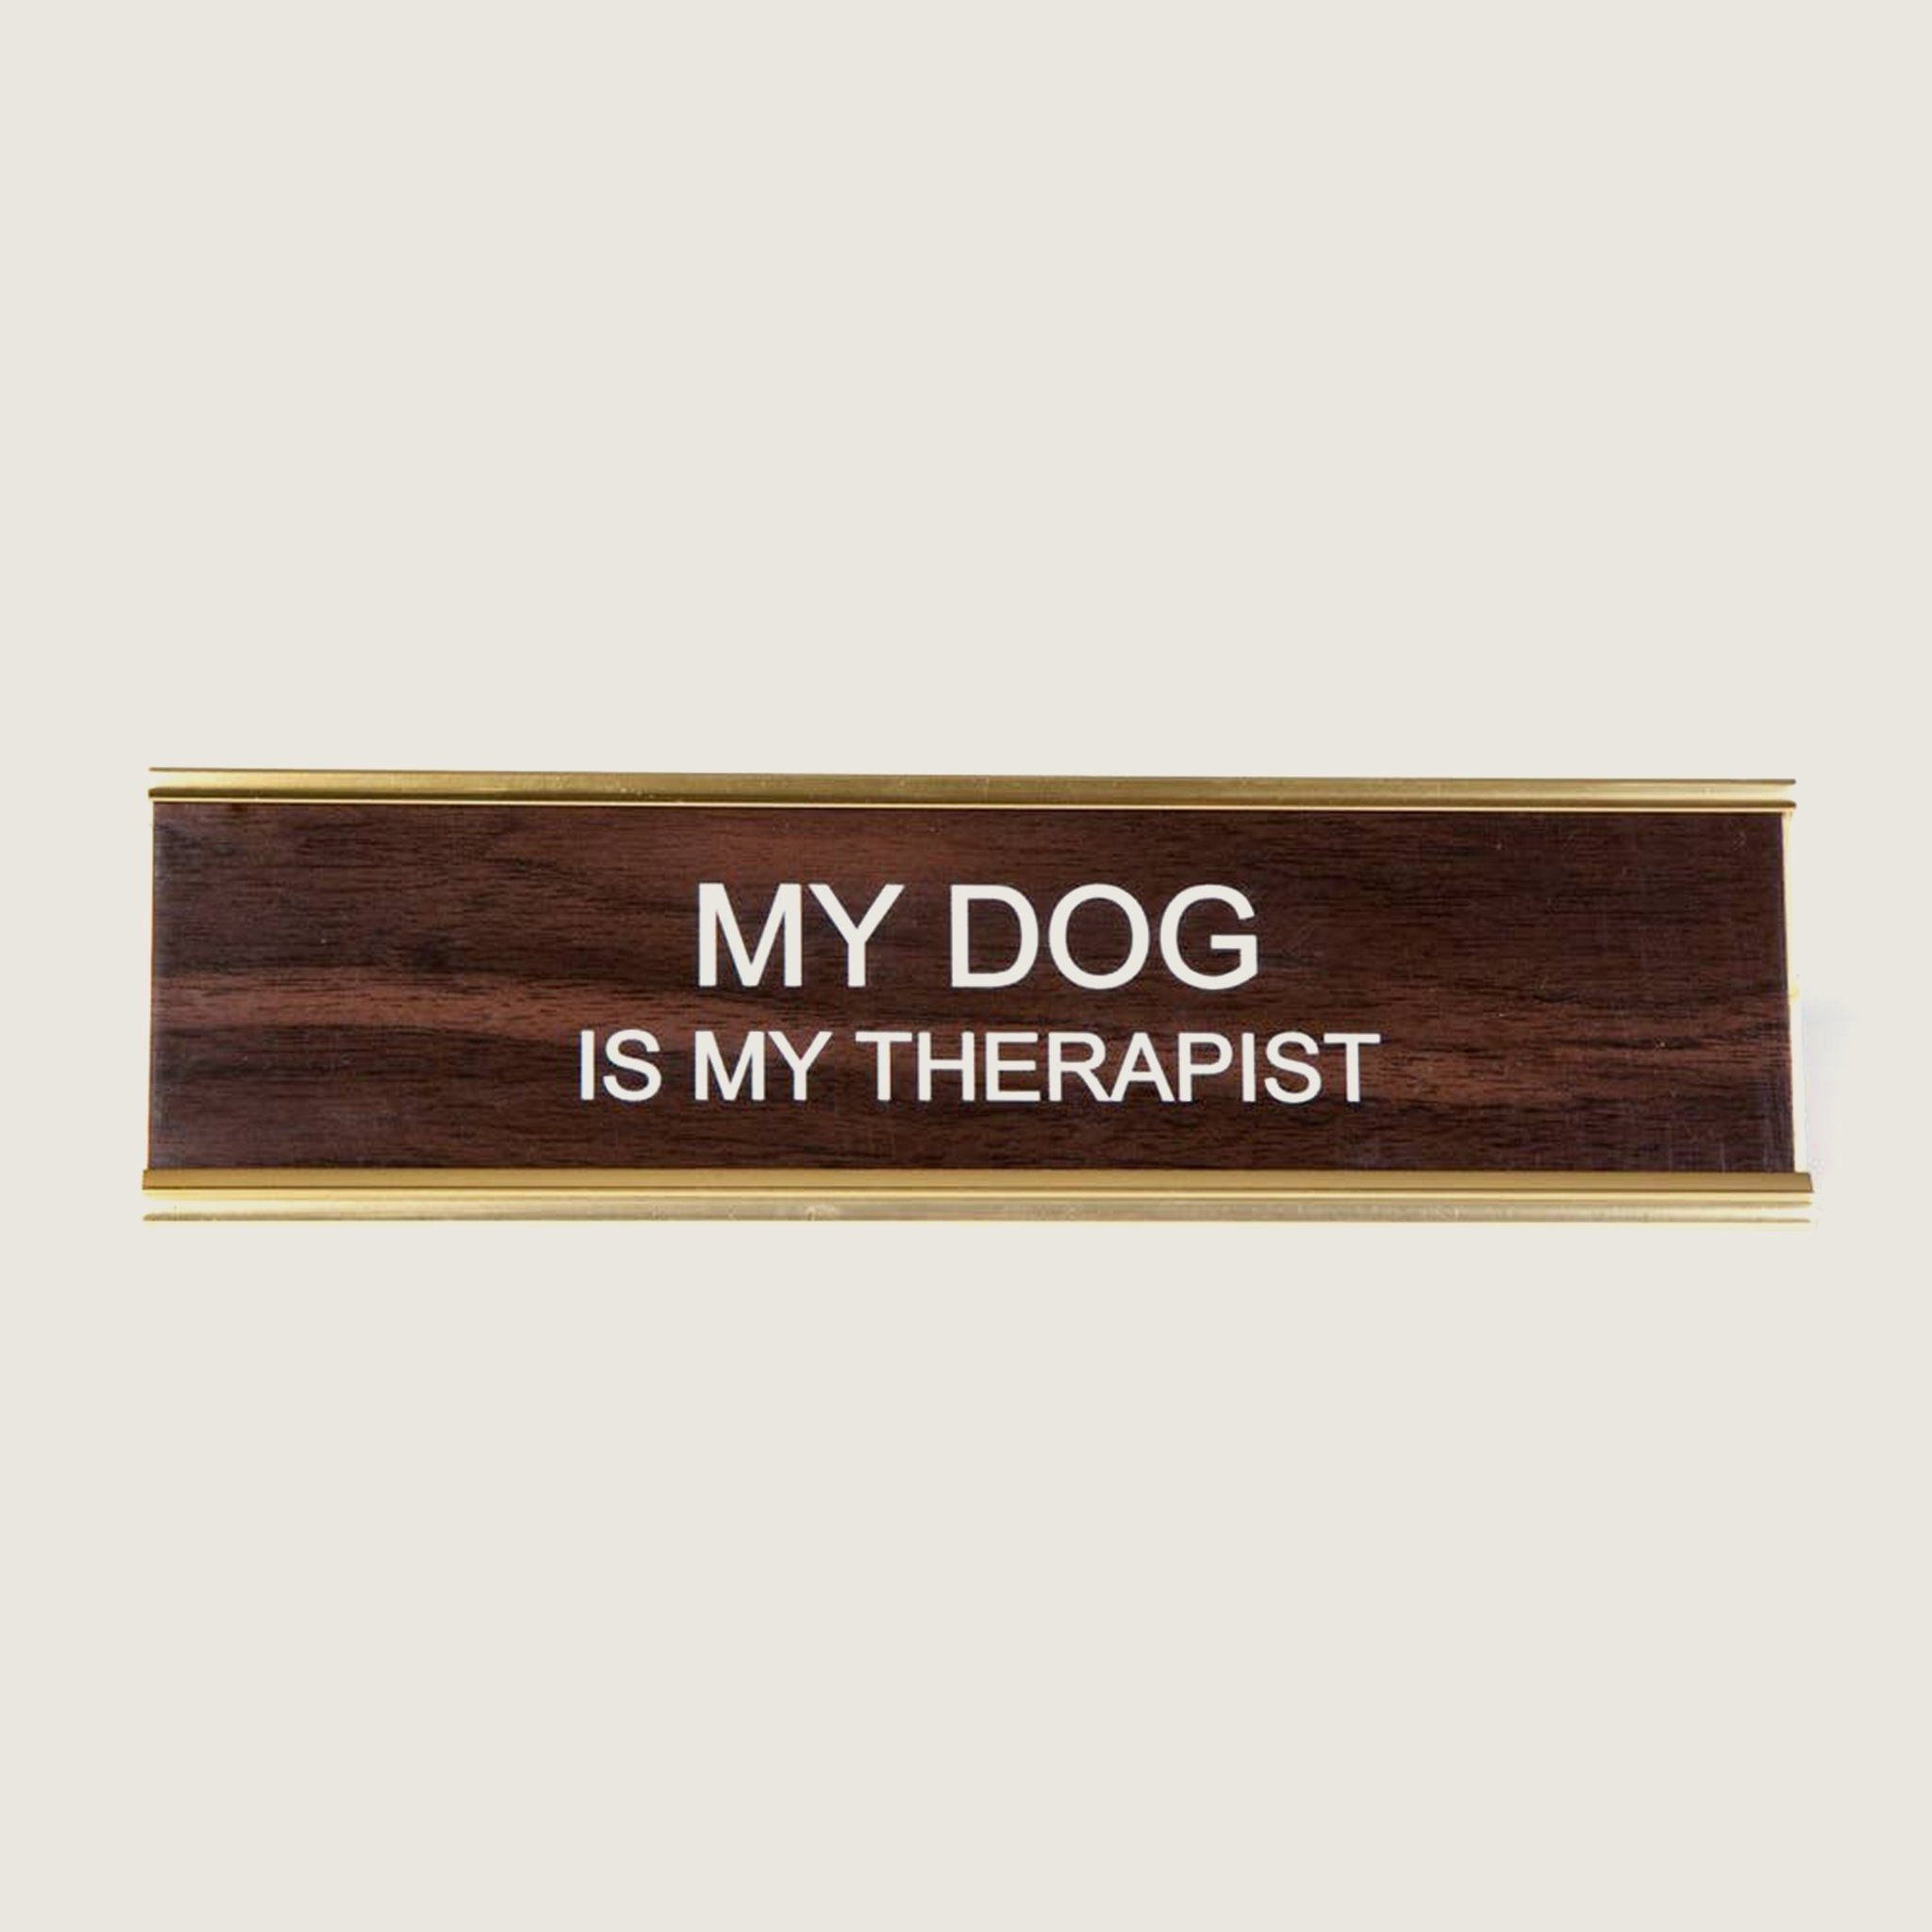 My Dog Is My Therapist - Blackbird General Store